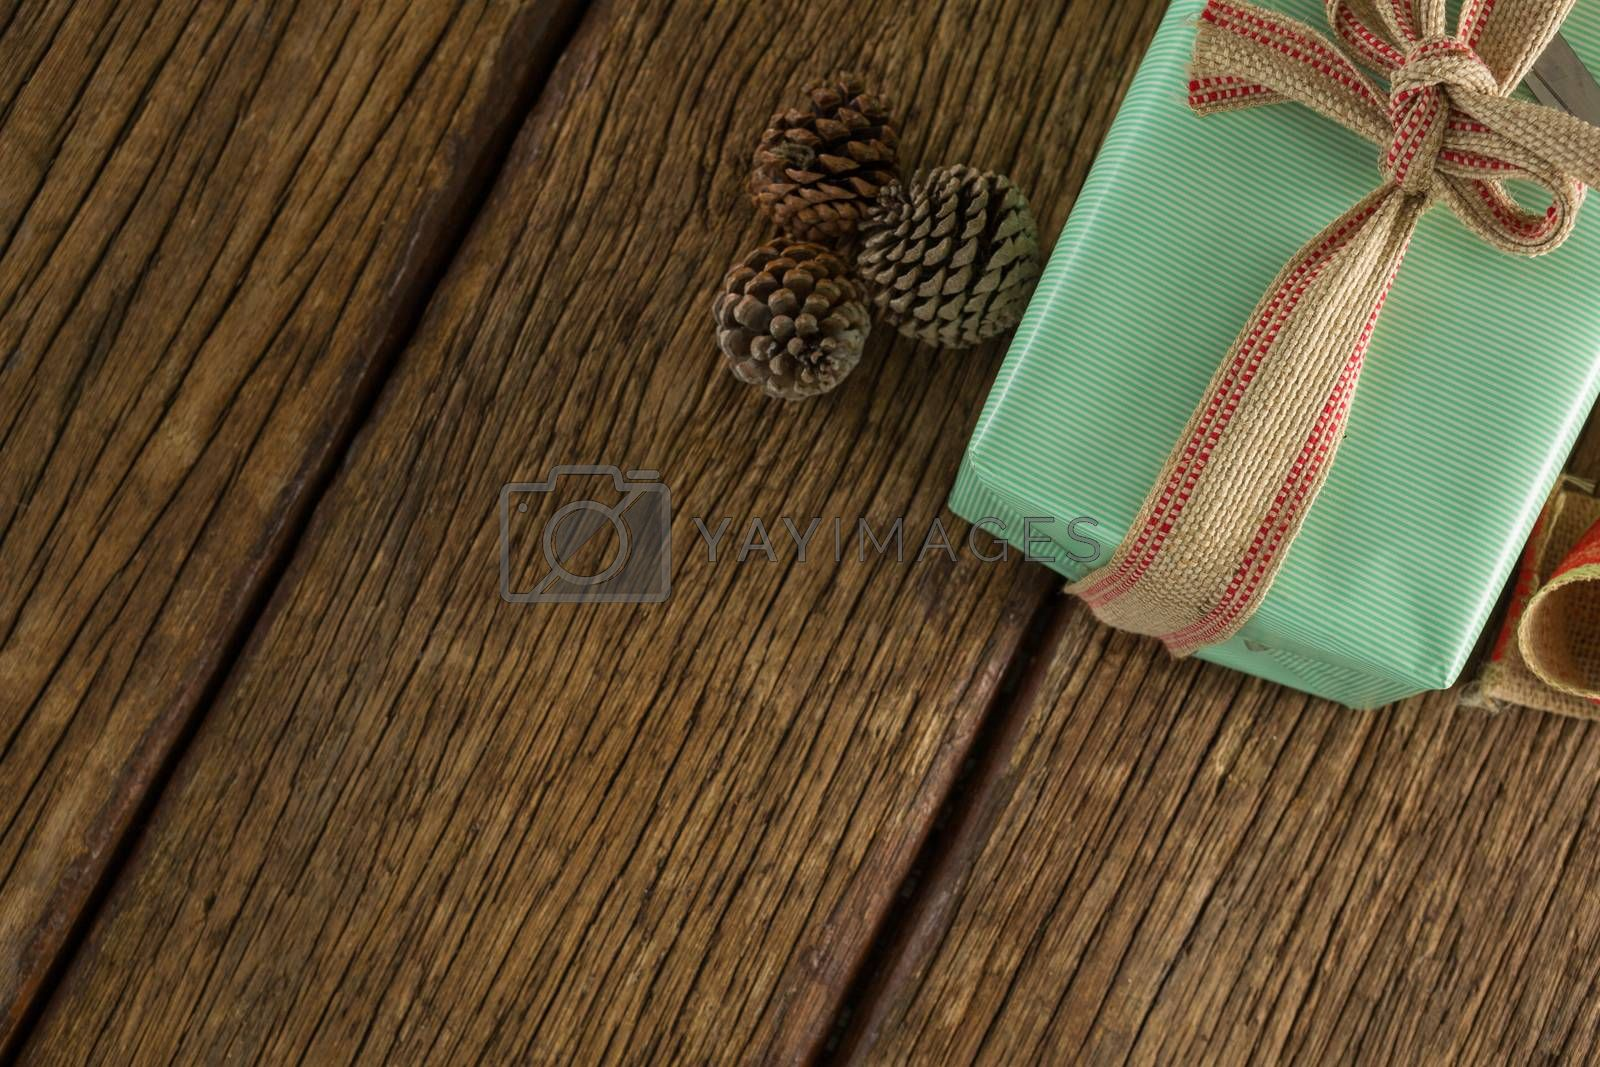 Pine cones and wrapped gift box on wooden table by Wavebreakmedia